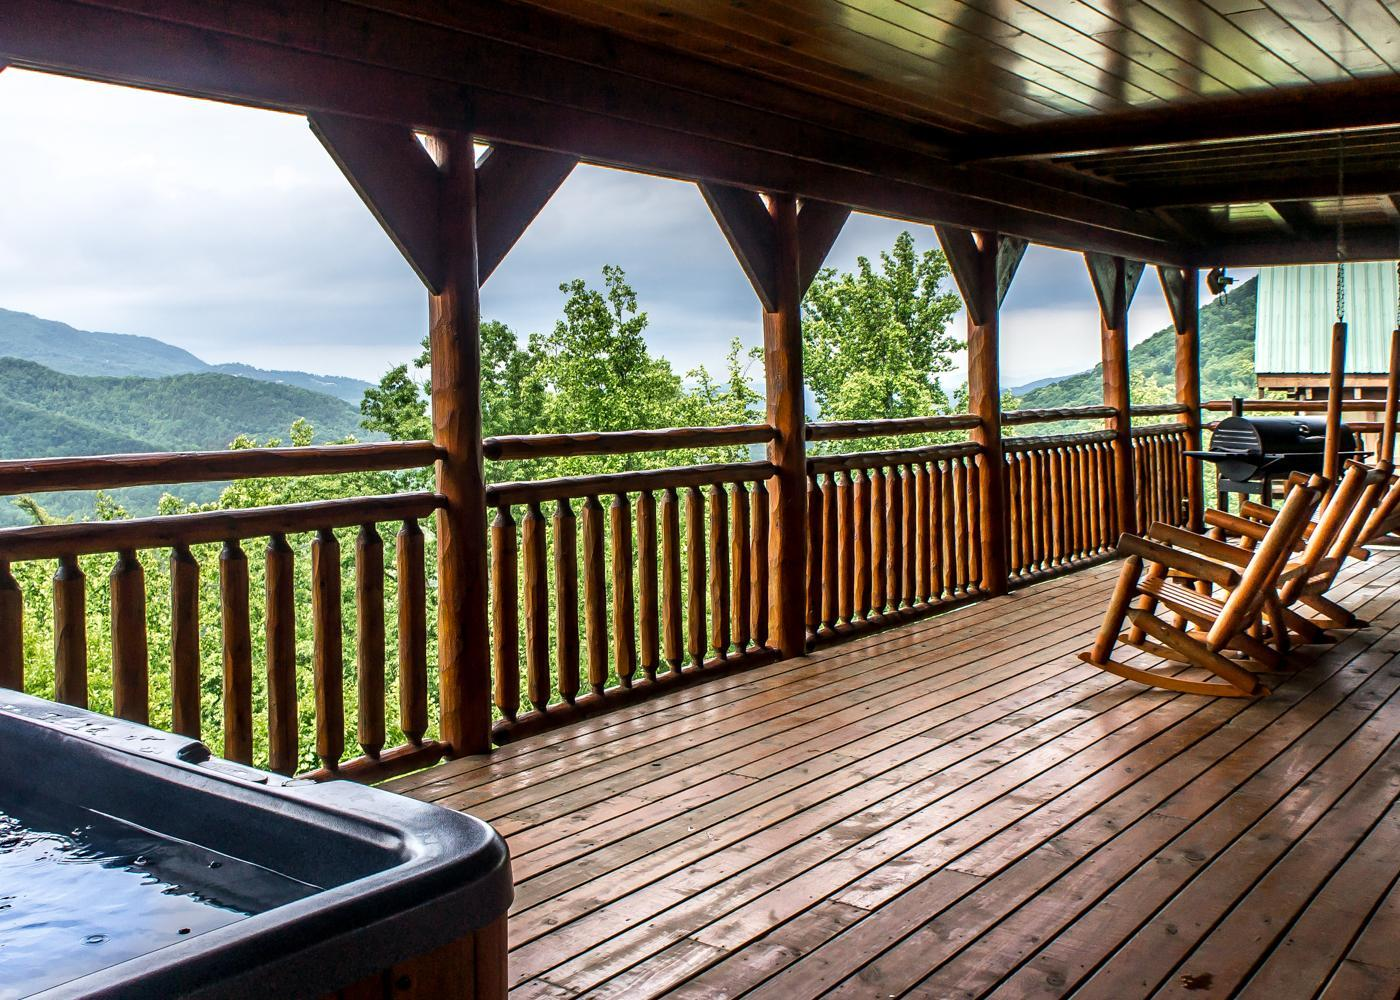 Property Image 1 - Cozy Mountainside Cabin with Hot Tub and Viewing Deck